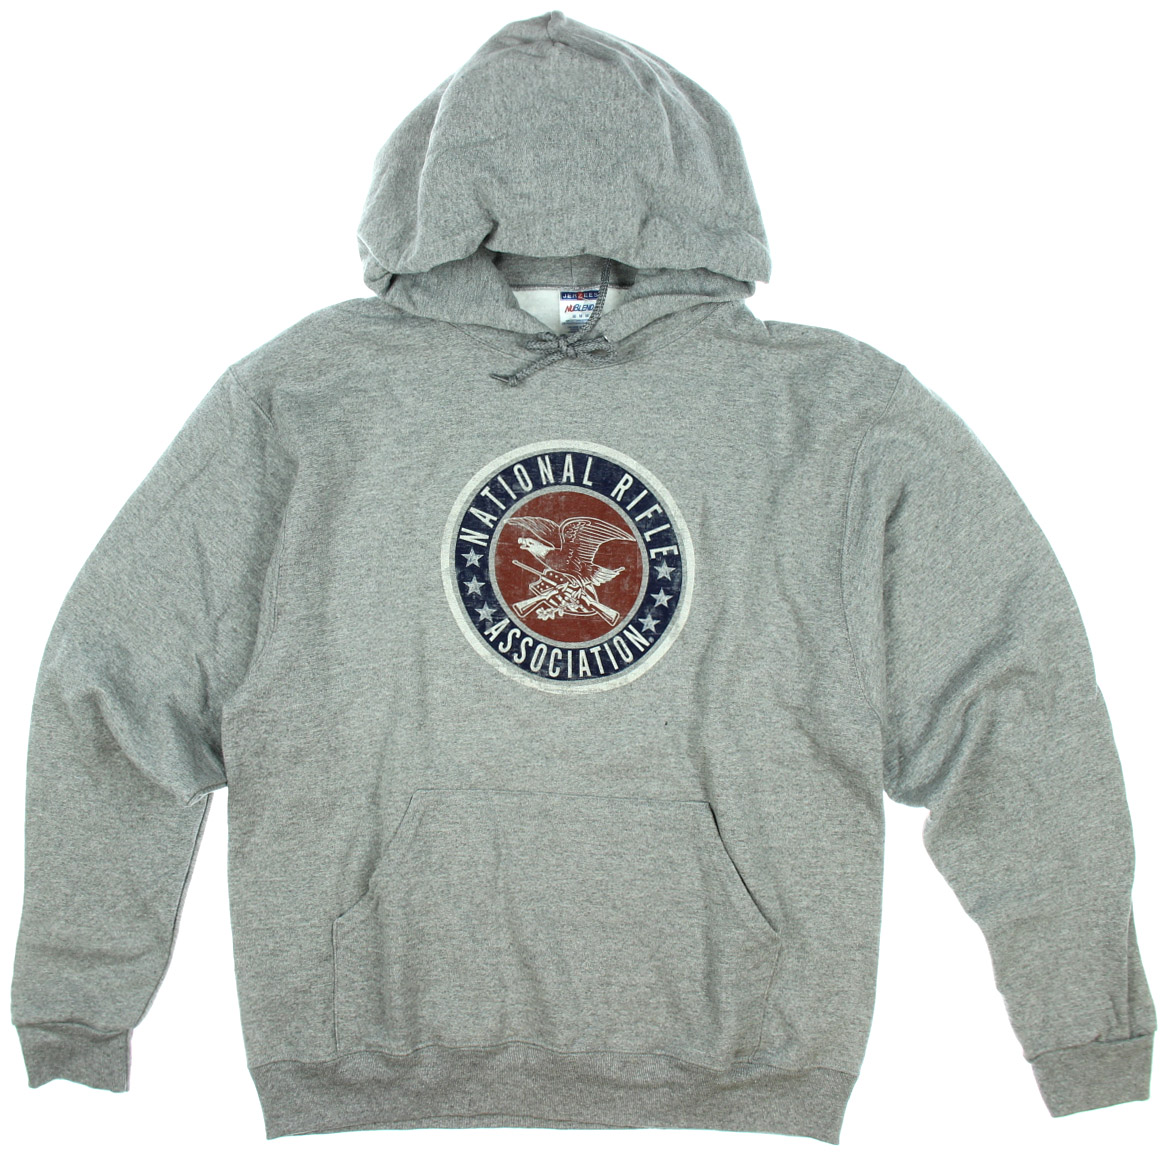 National Rifle Association Mens Grey Hoodie